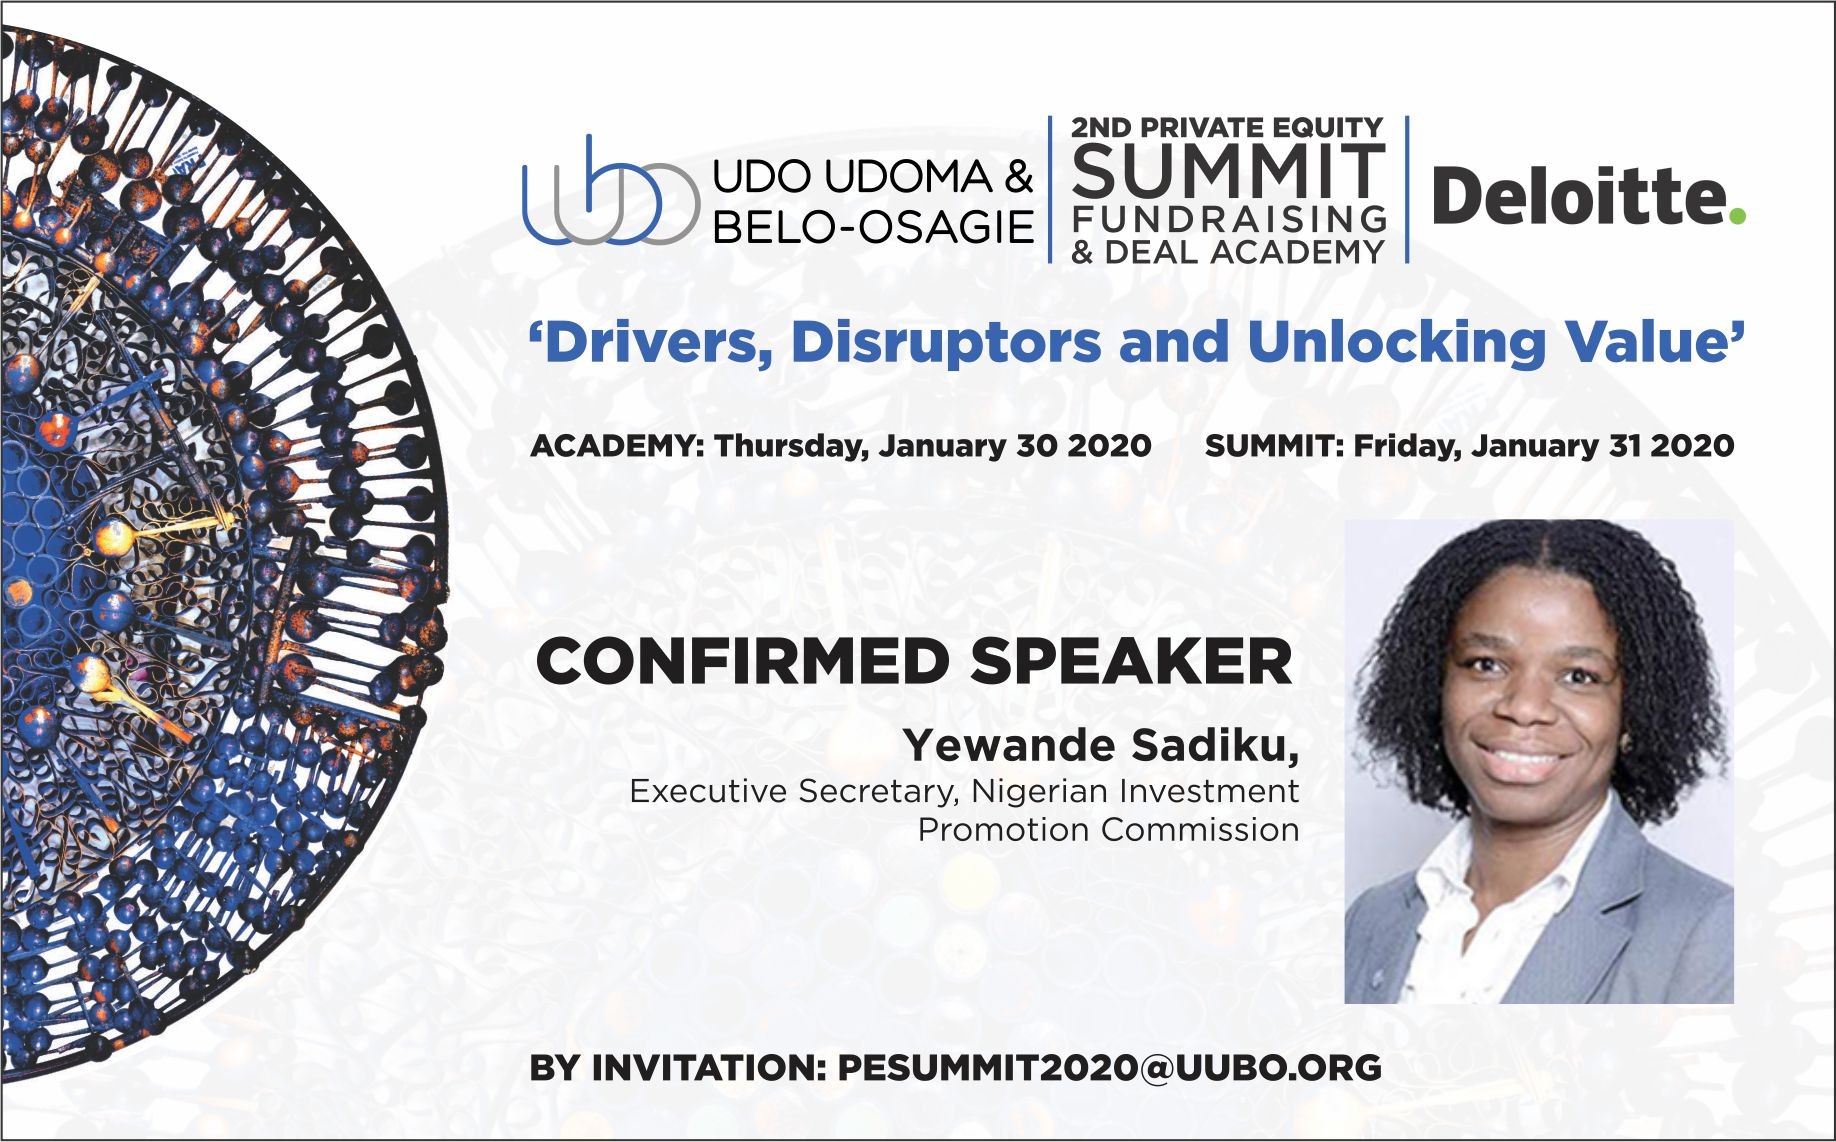 Yewande Sadiku, Executive Secretary, Nigerian Investment Promotion Commission